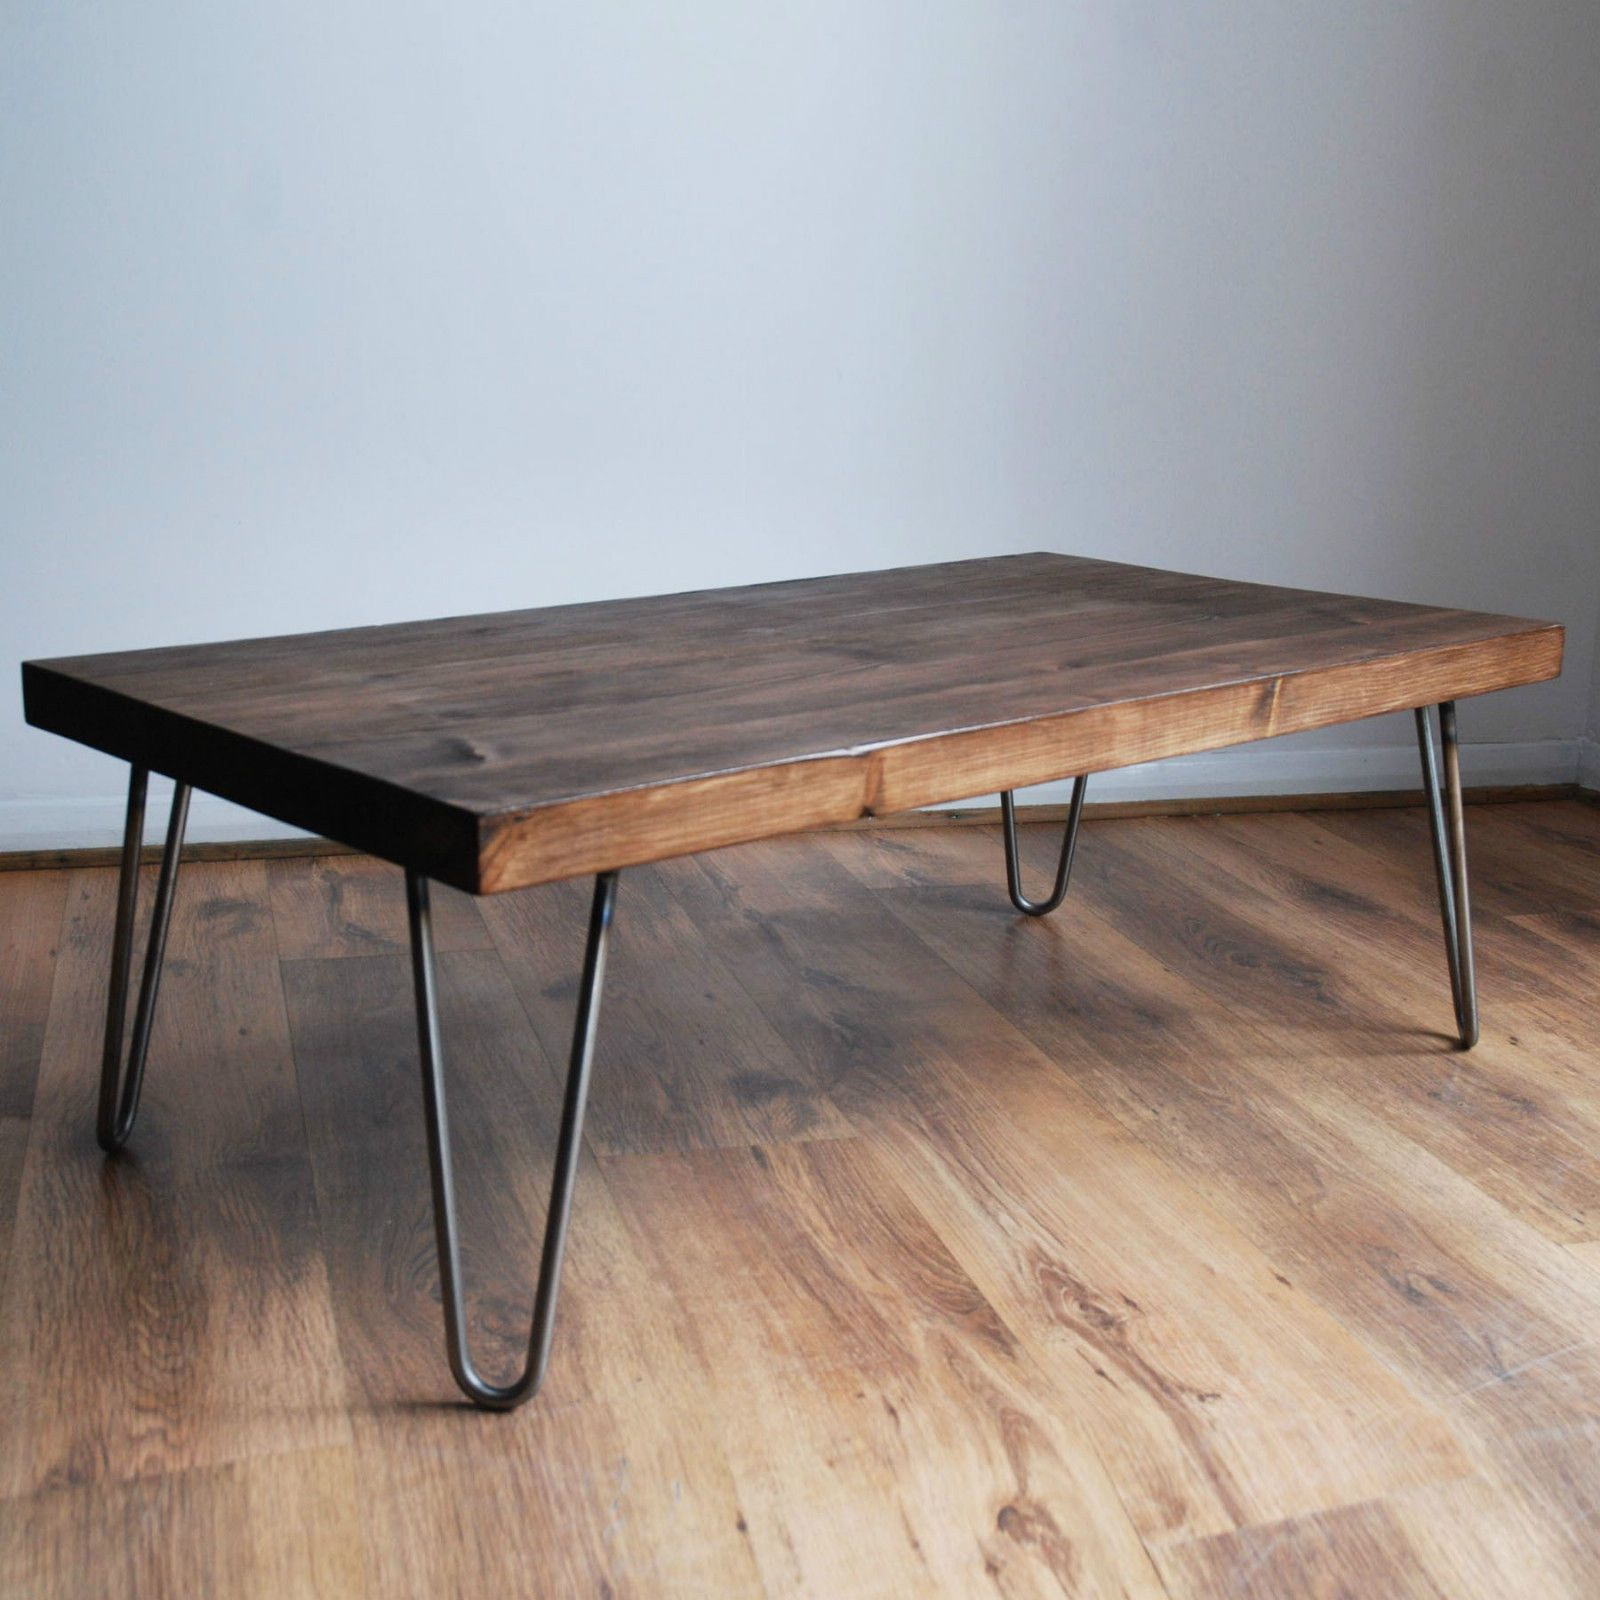 Rustic Vintage Industrial Solid Wood Coffee Table Bare Metal